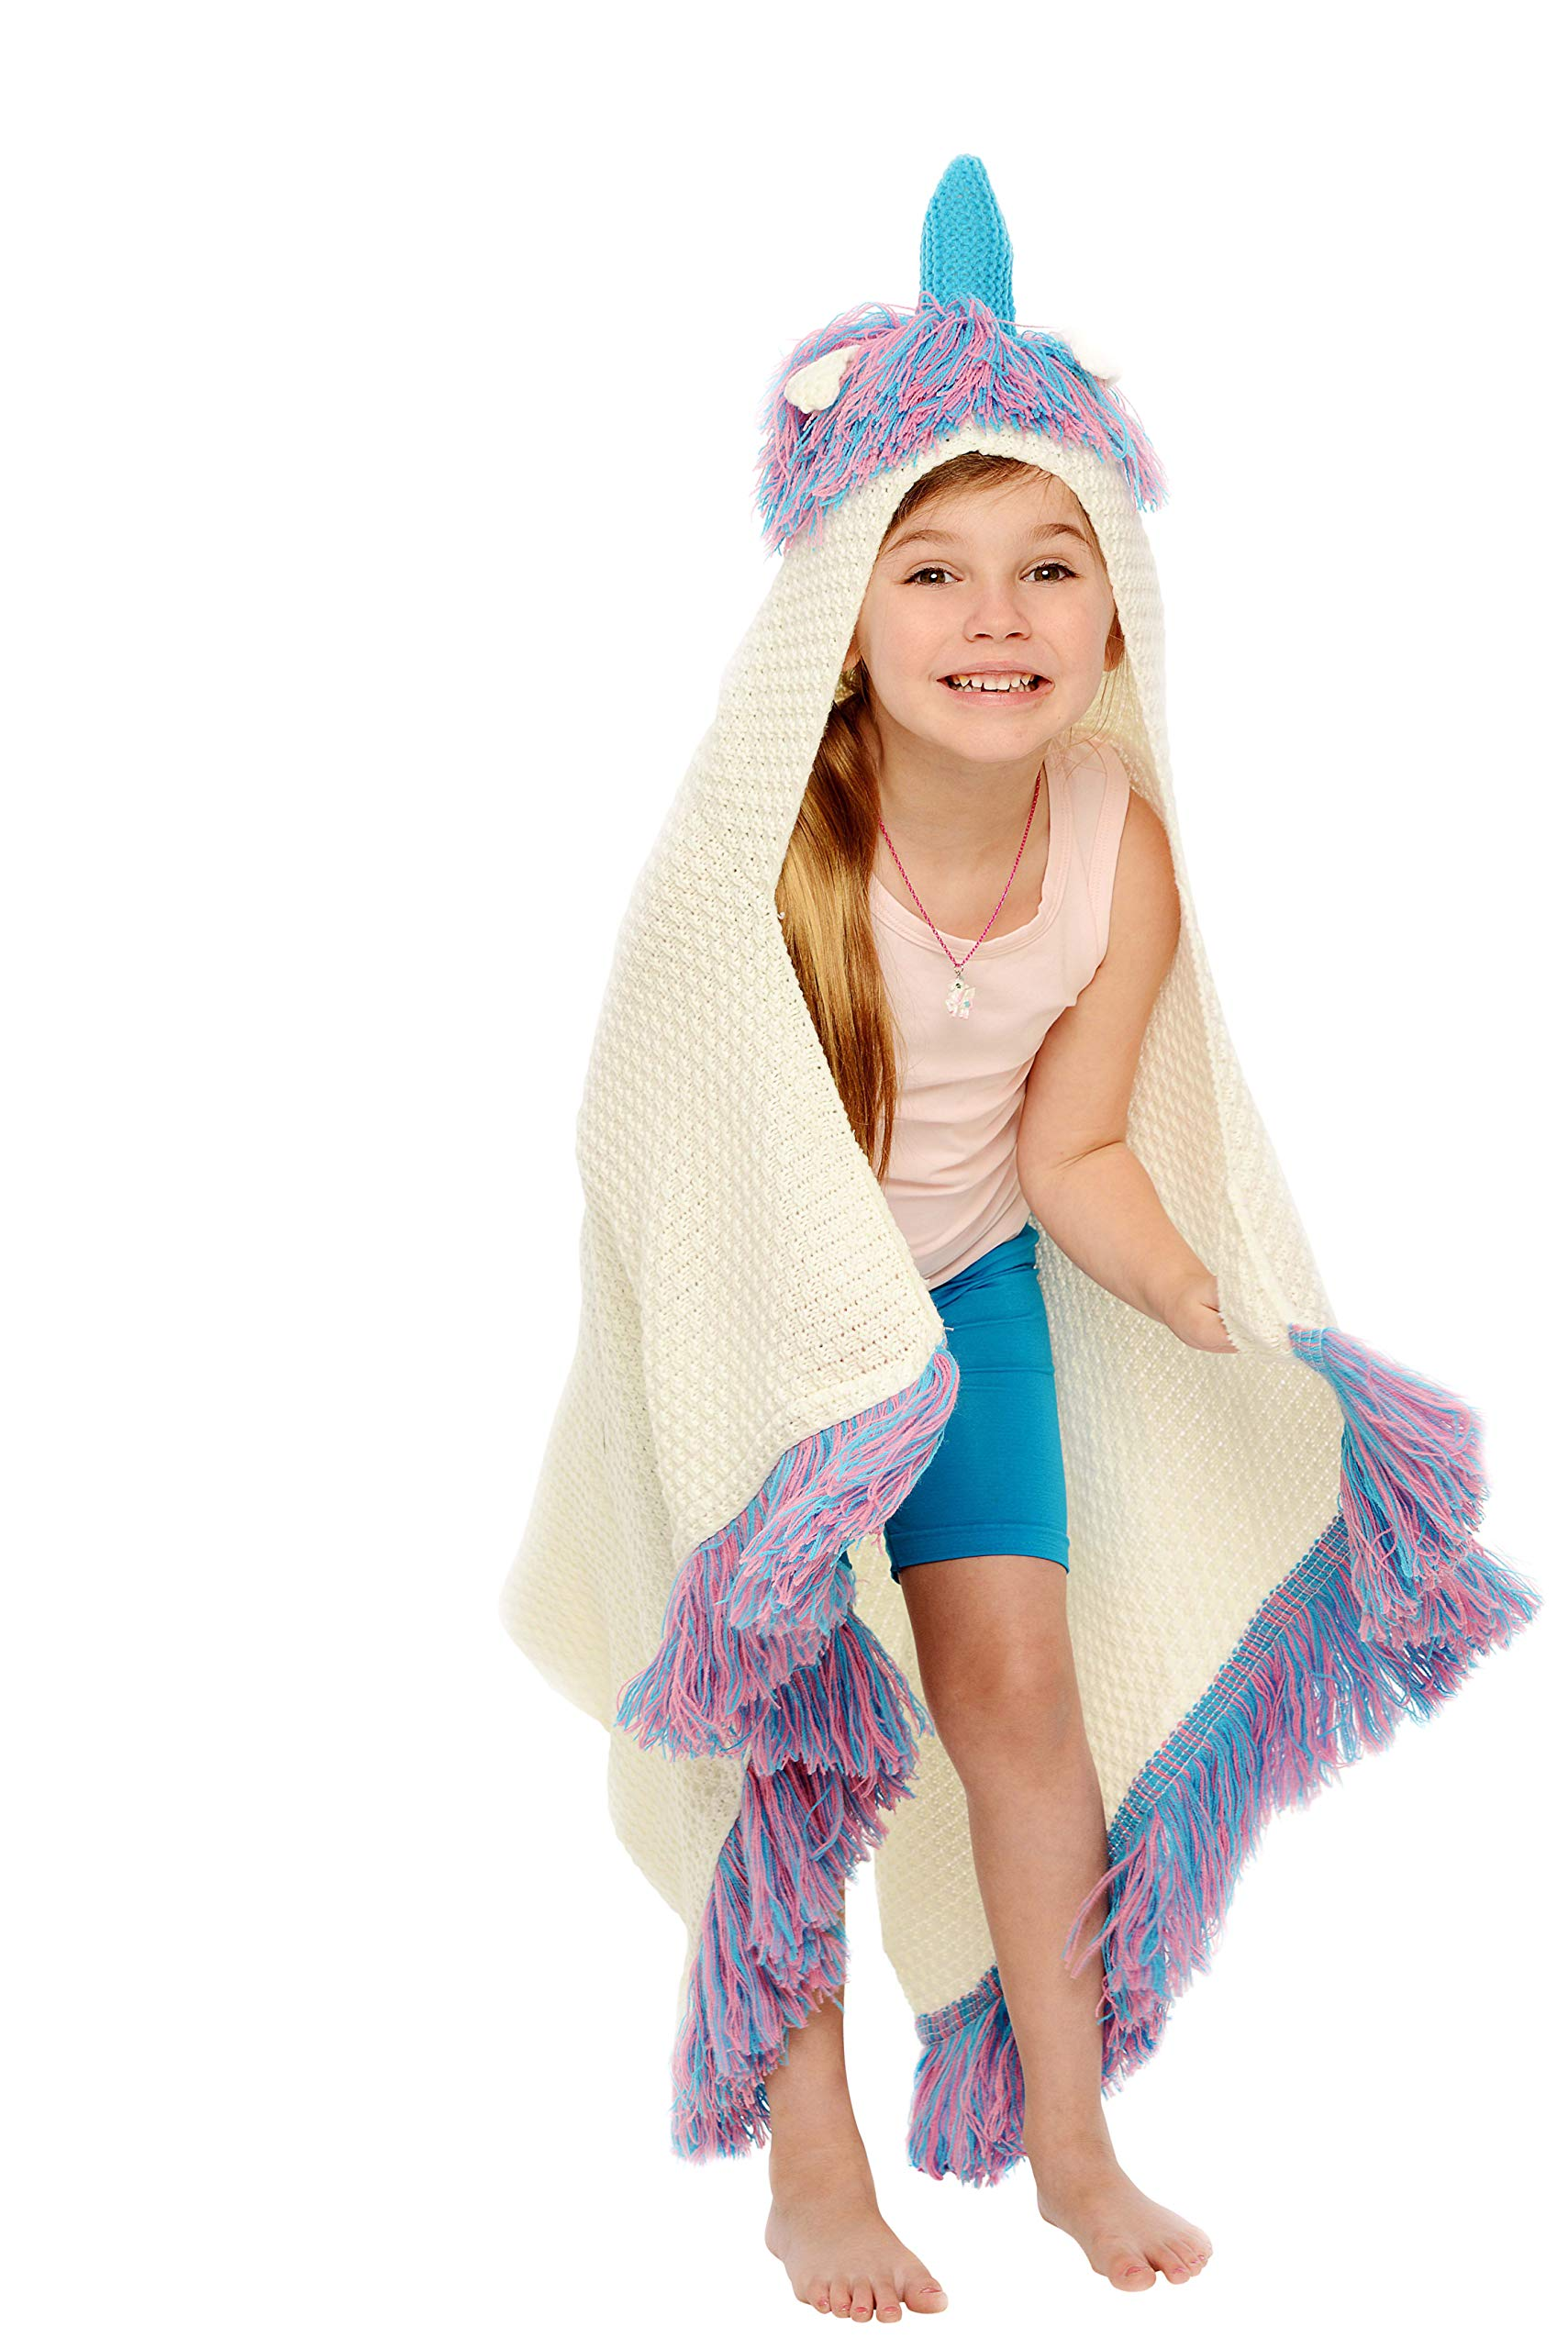 Rows of Throws Hypoallergenic Unicorn Blanket with Hood for Kids - Rare Blue Horn Model